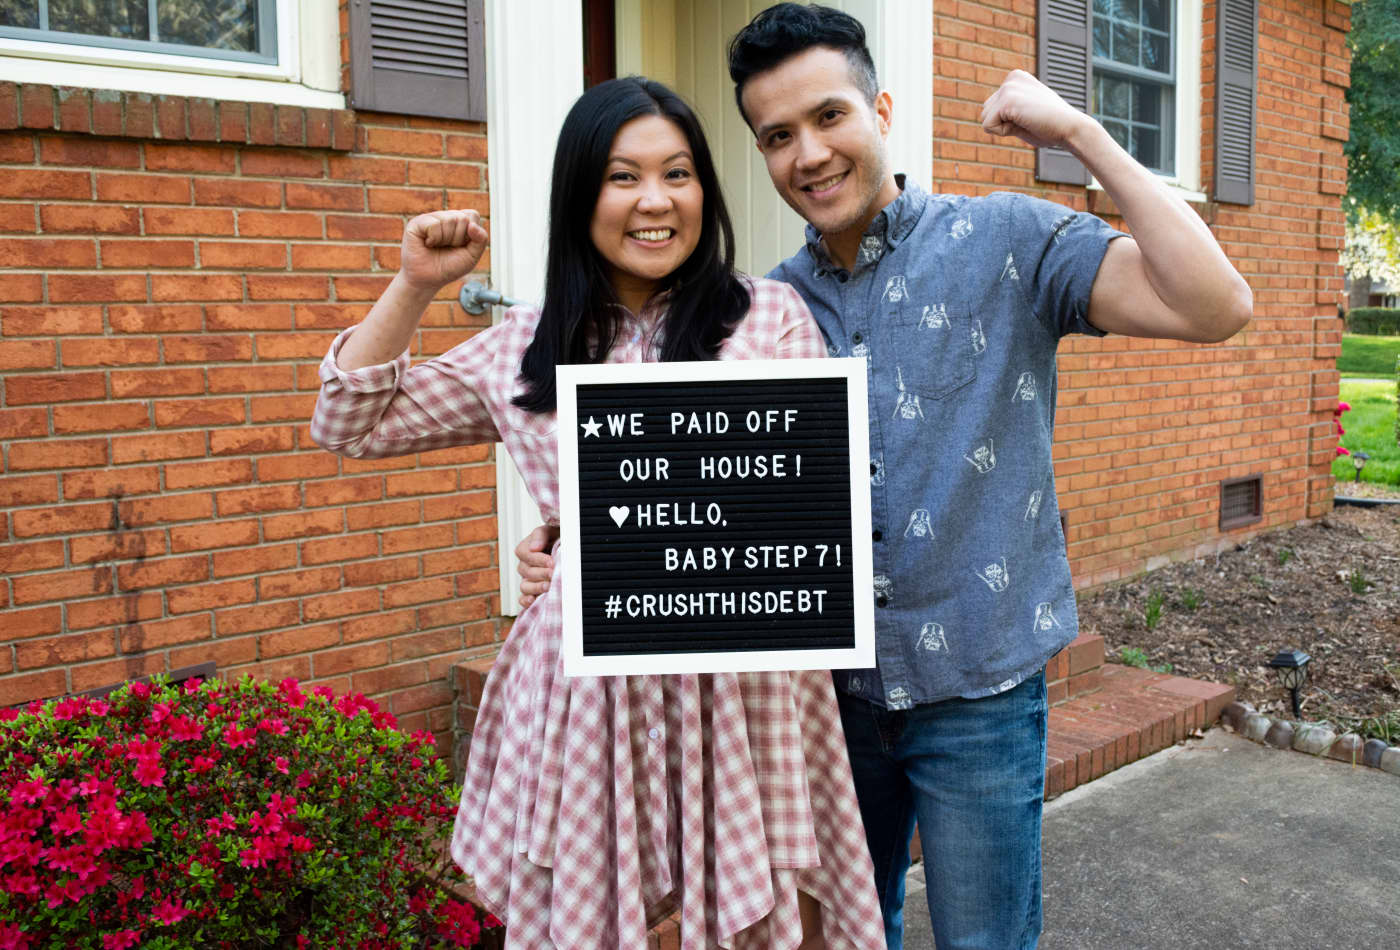 This couple paid off $300,000 in debt in 3 years. Here are the lifestyle changes that helped